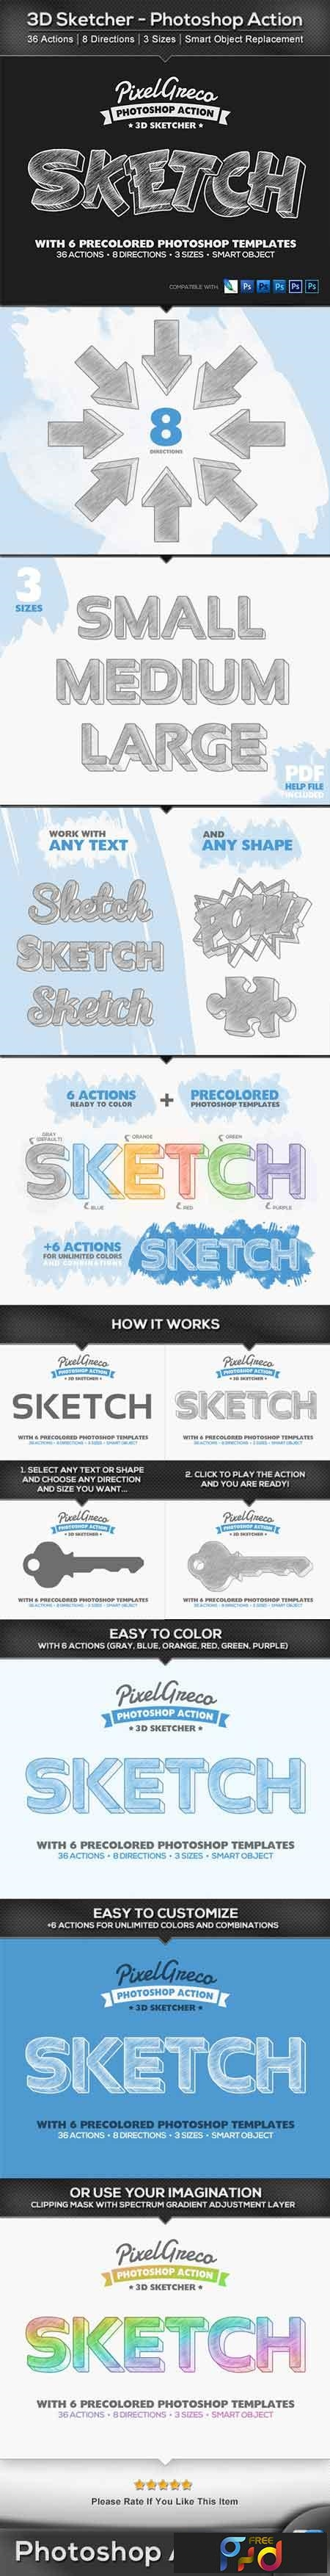 3D Sketcher - Photoshop Action 22510138 1